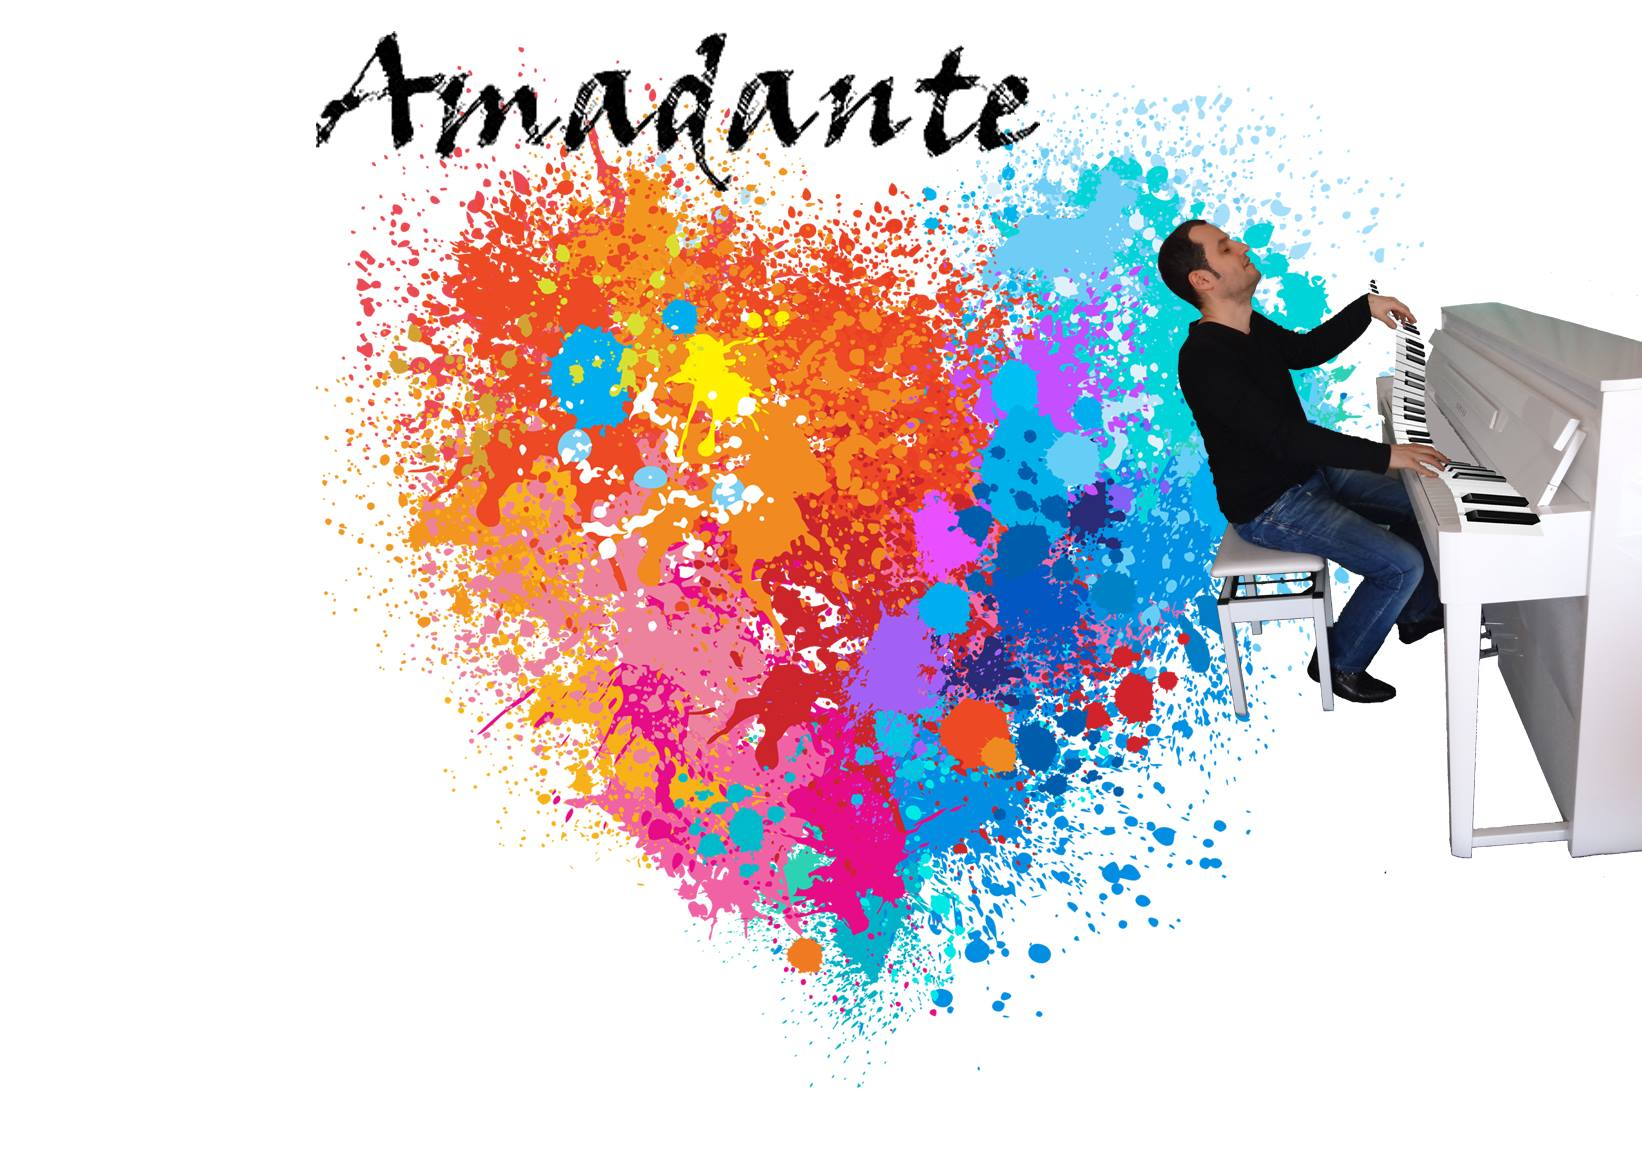 REVIEW: AMADANTE - A PEREFECT DAY